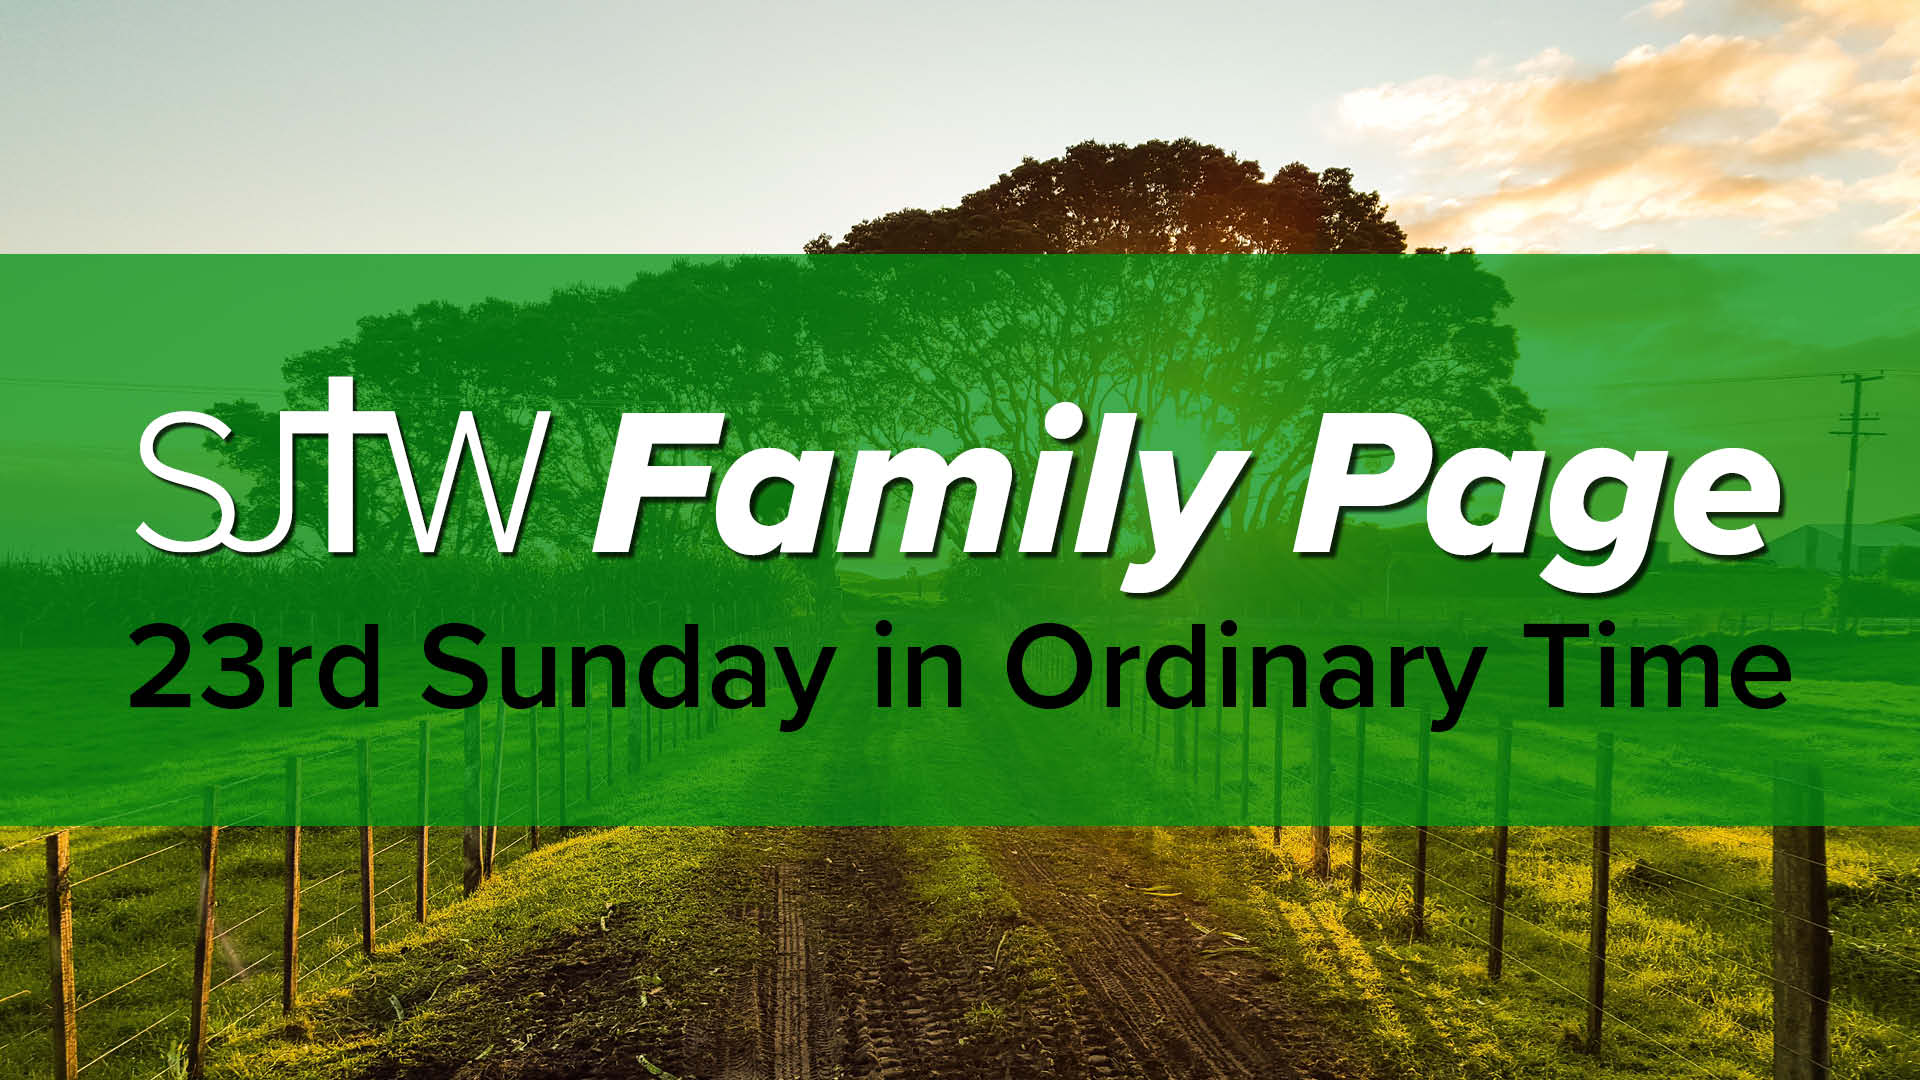 Family Page - 23rd Sunday in Ordinary Time